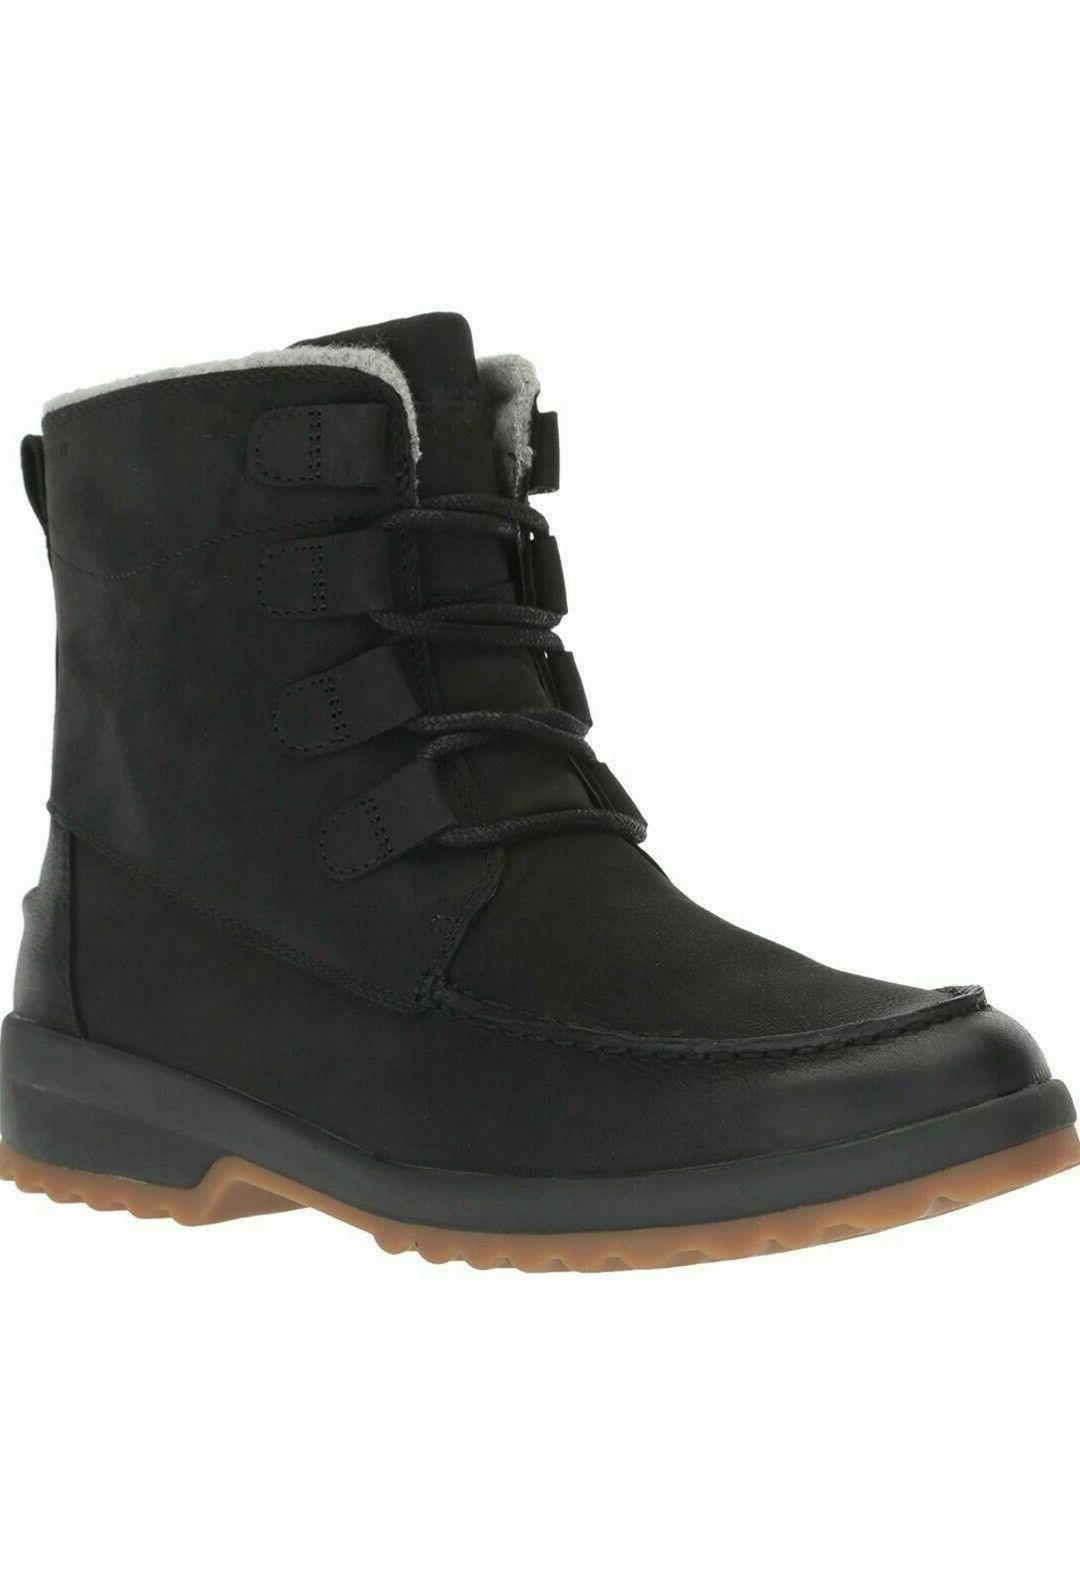 Sperry Maritime Boot m New